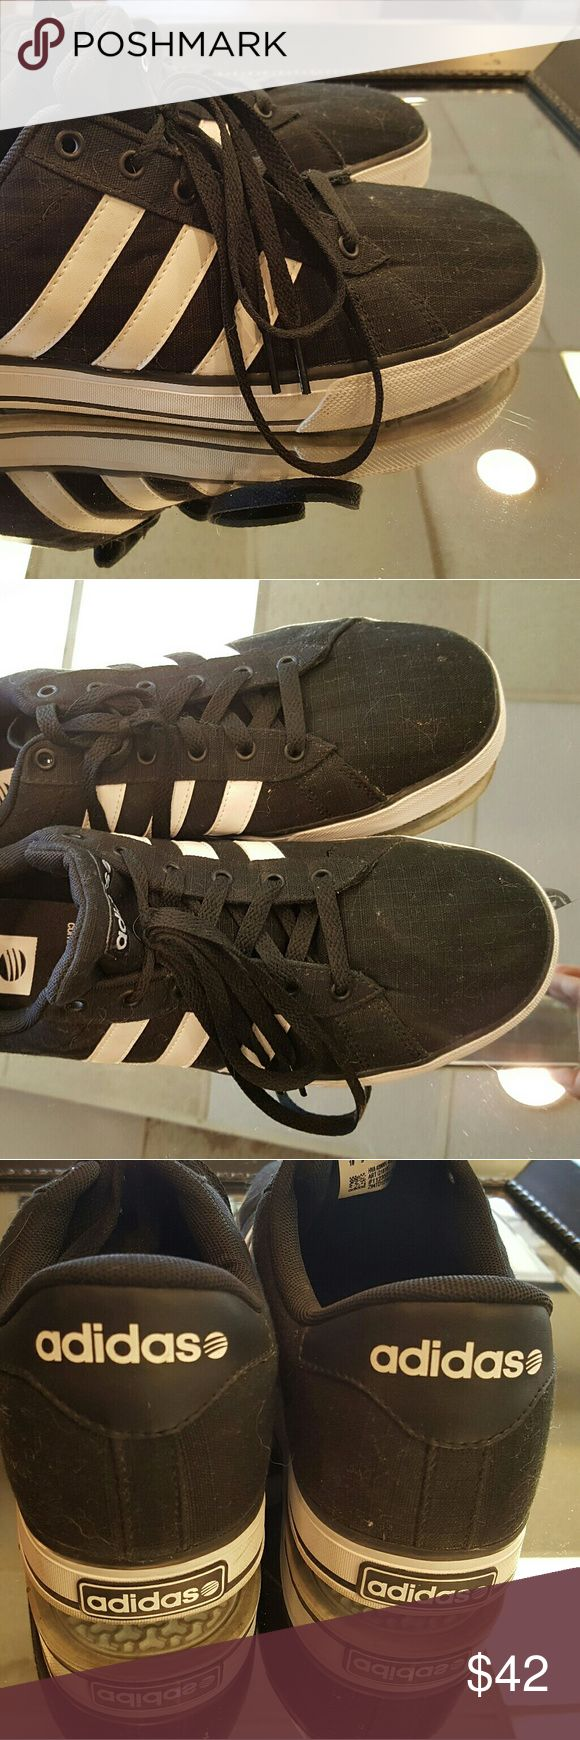 Adidas men's shoes sz 10 Adidas sneakers sz 10 Adidas Shoes Sneakers